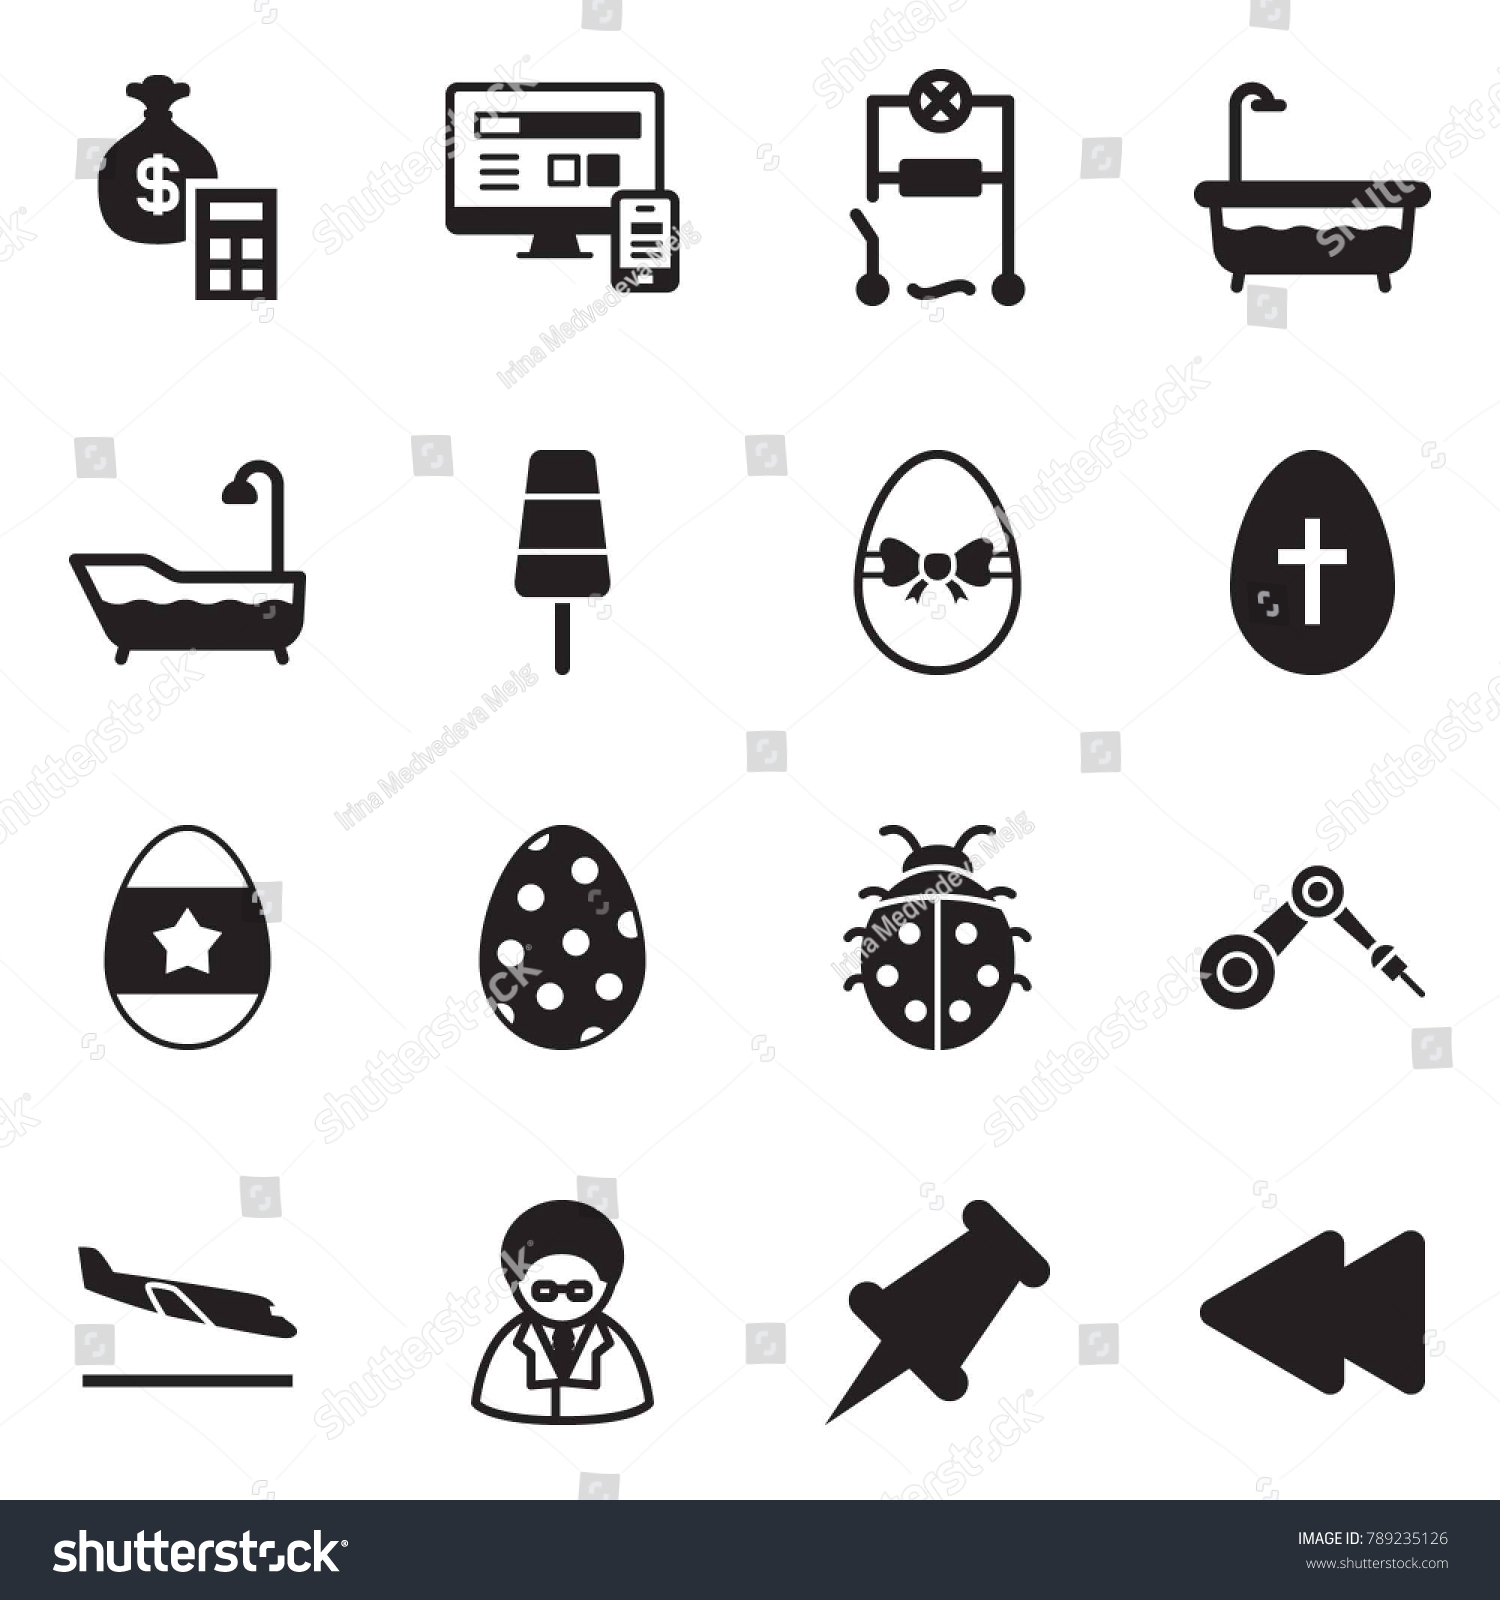 Solid Black Vector Icon Set Money Stock Royalty Free Wiring How To Bag Calculator Monitor Phone